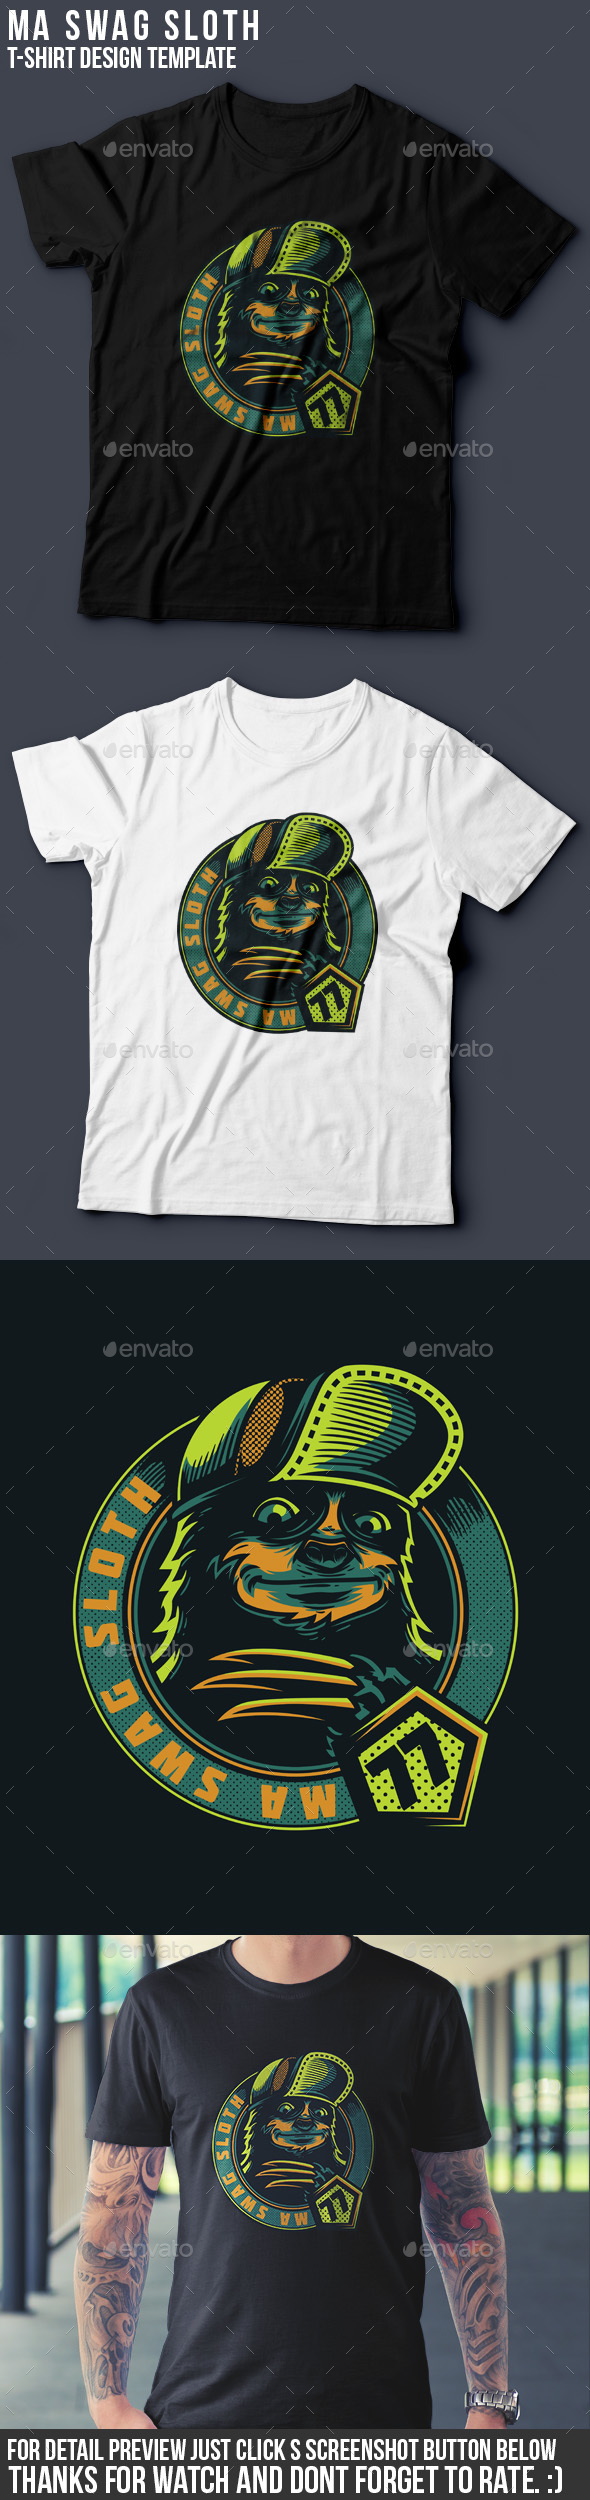 Ma Swag Sloth T-Shirt Design - Funny Designs